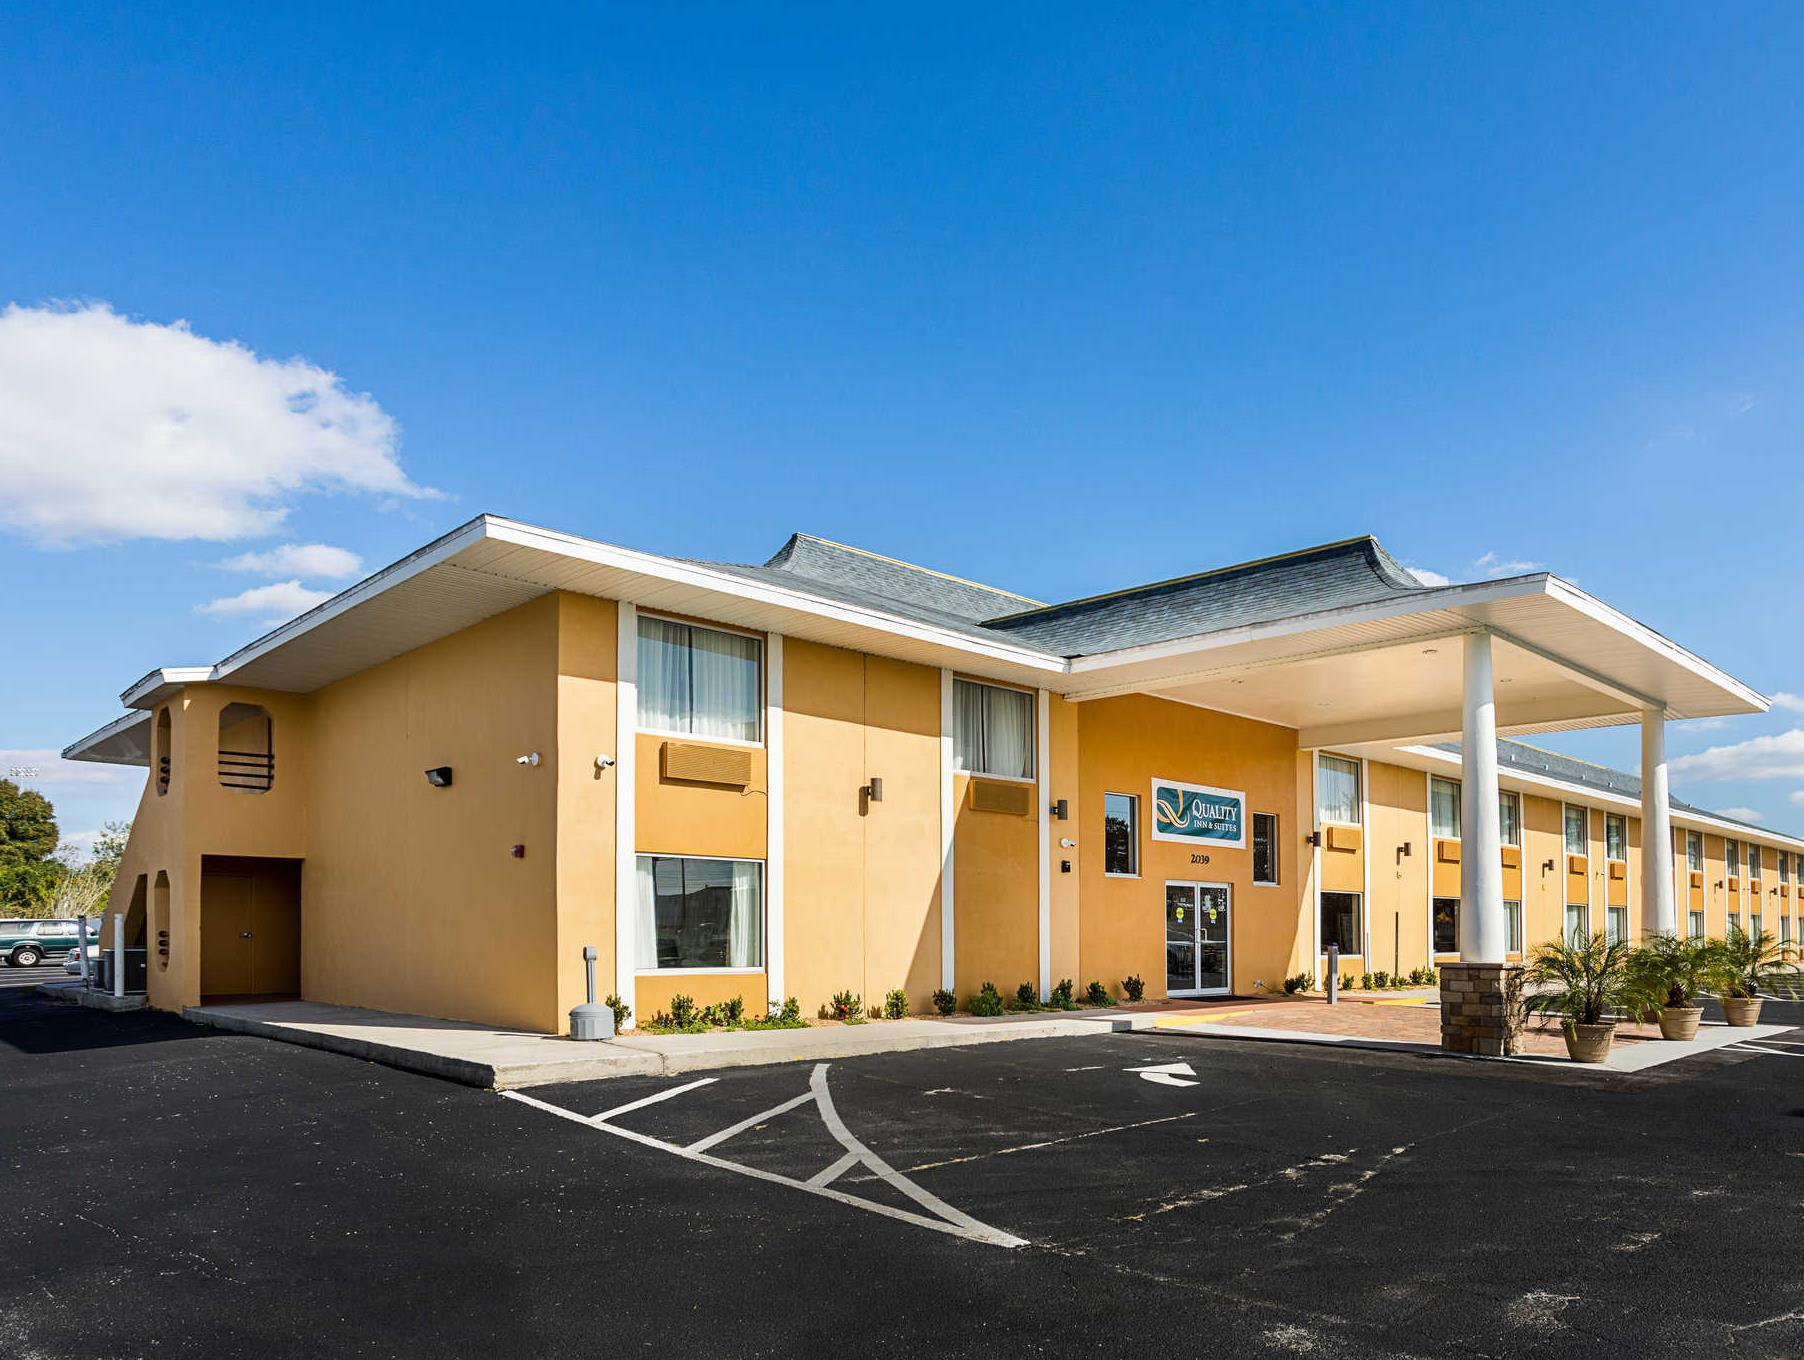 Quality Inn And Suites Heritage Park